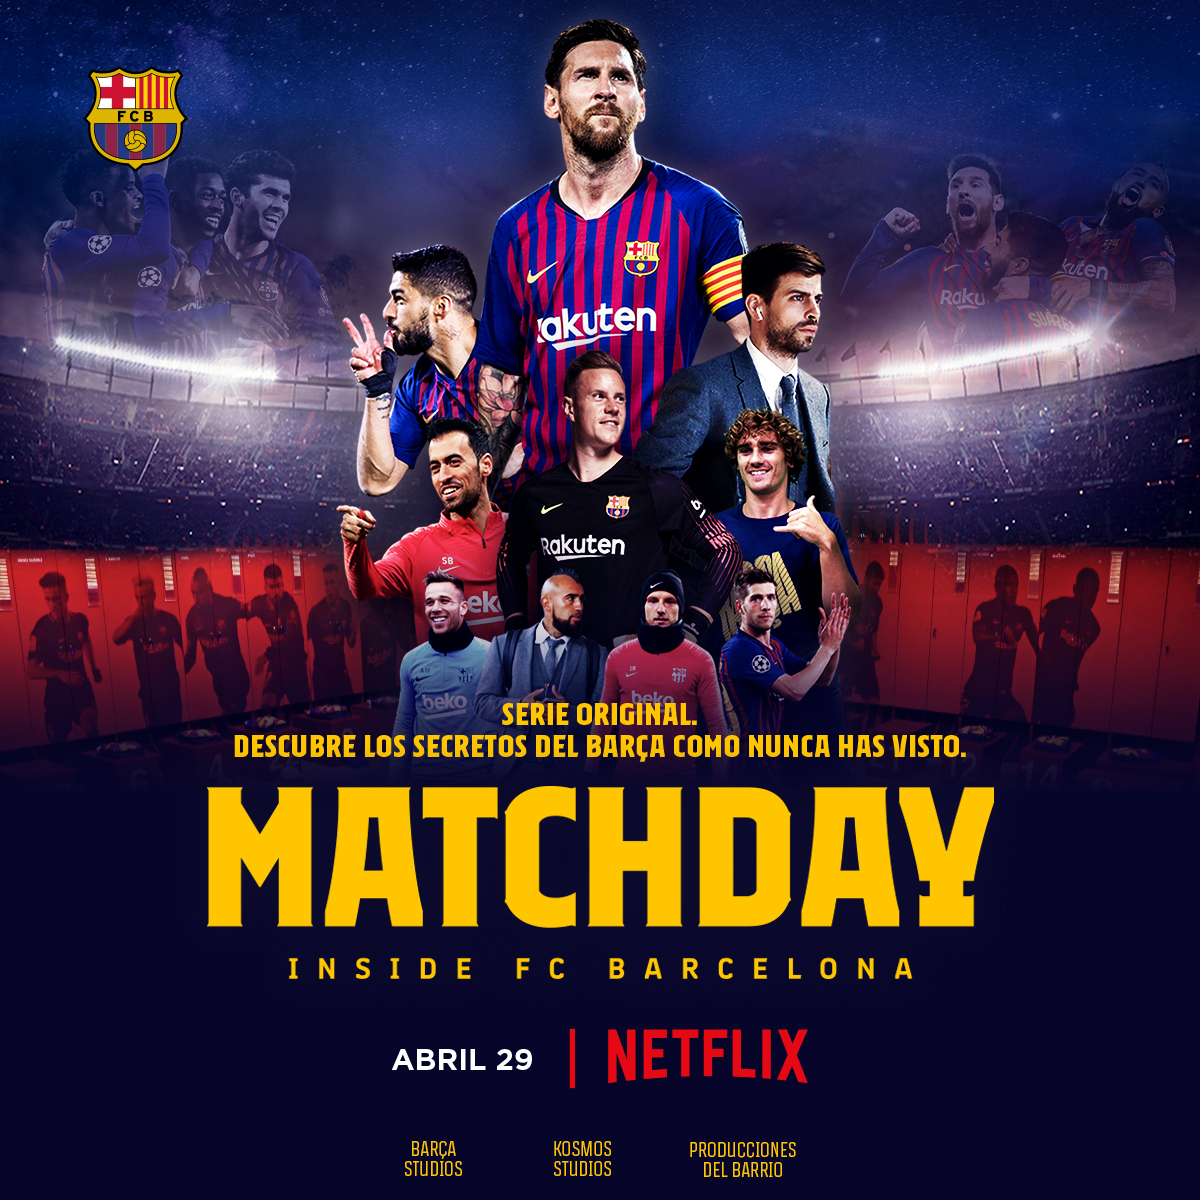 Netflix just launched 'Matchday: Inside FC Barcelona', a Kosmos Studios co-production, in Latin America and Canada.  The eight-part documentary series includes previously unseen footage of the first team's day-to-day lives.  More info➡️